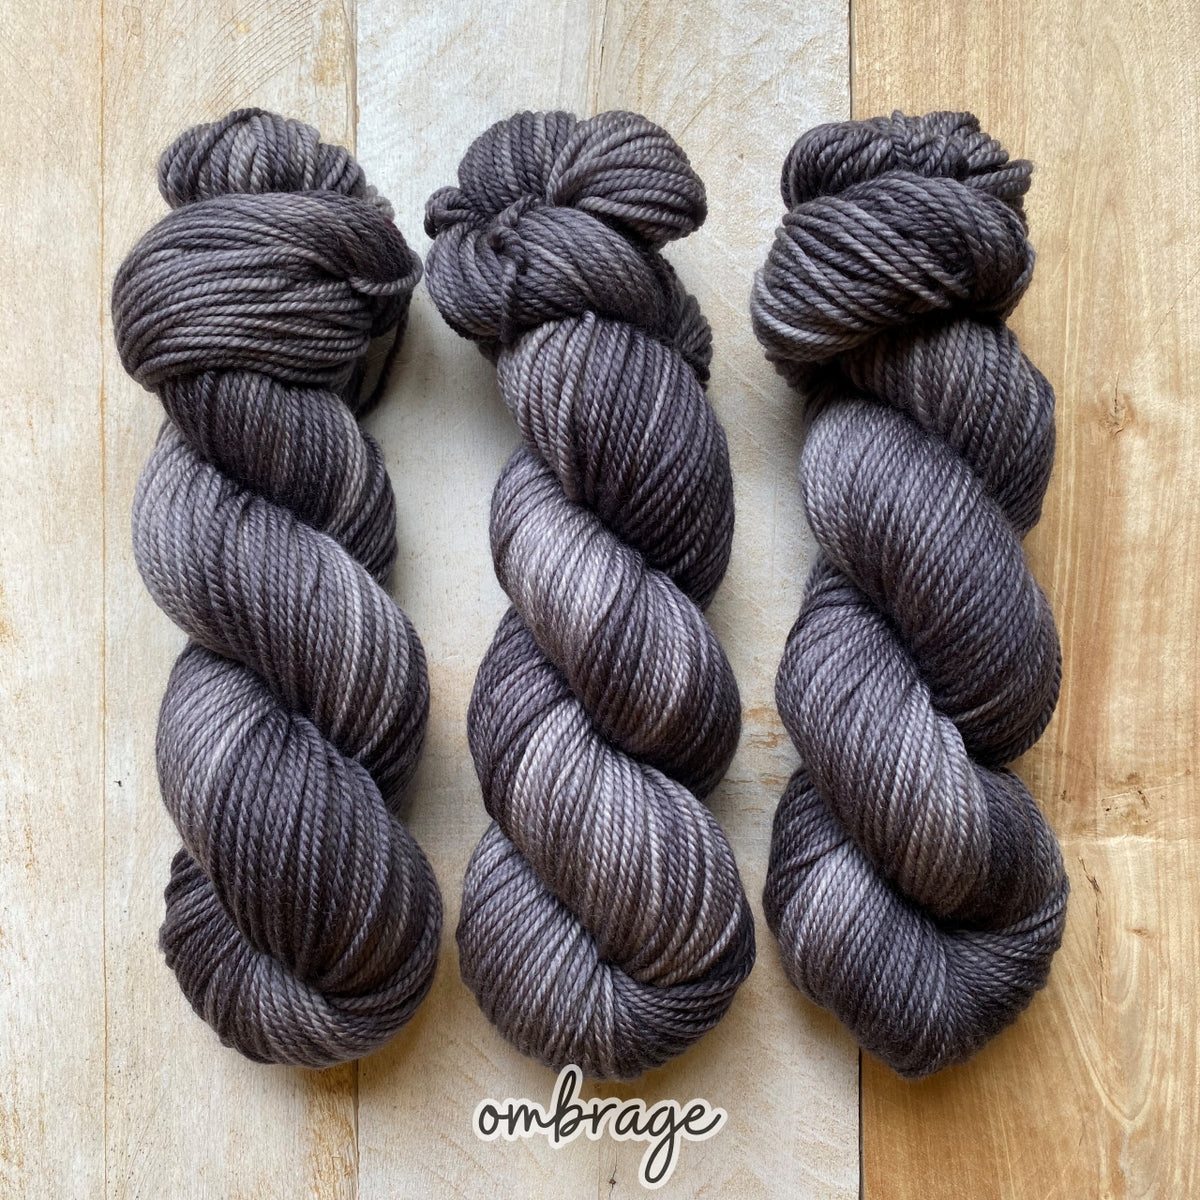 OMBRAGE by Louise Robert Design | MERINO WORSTED hand-dyed semi-solid yarn